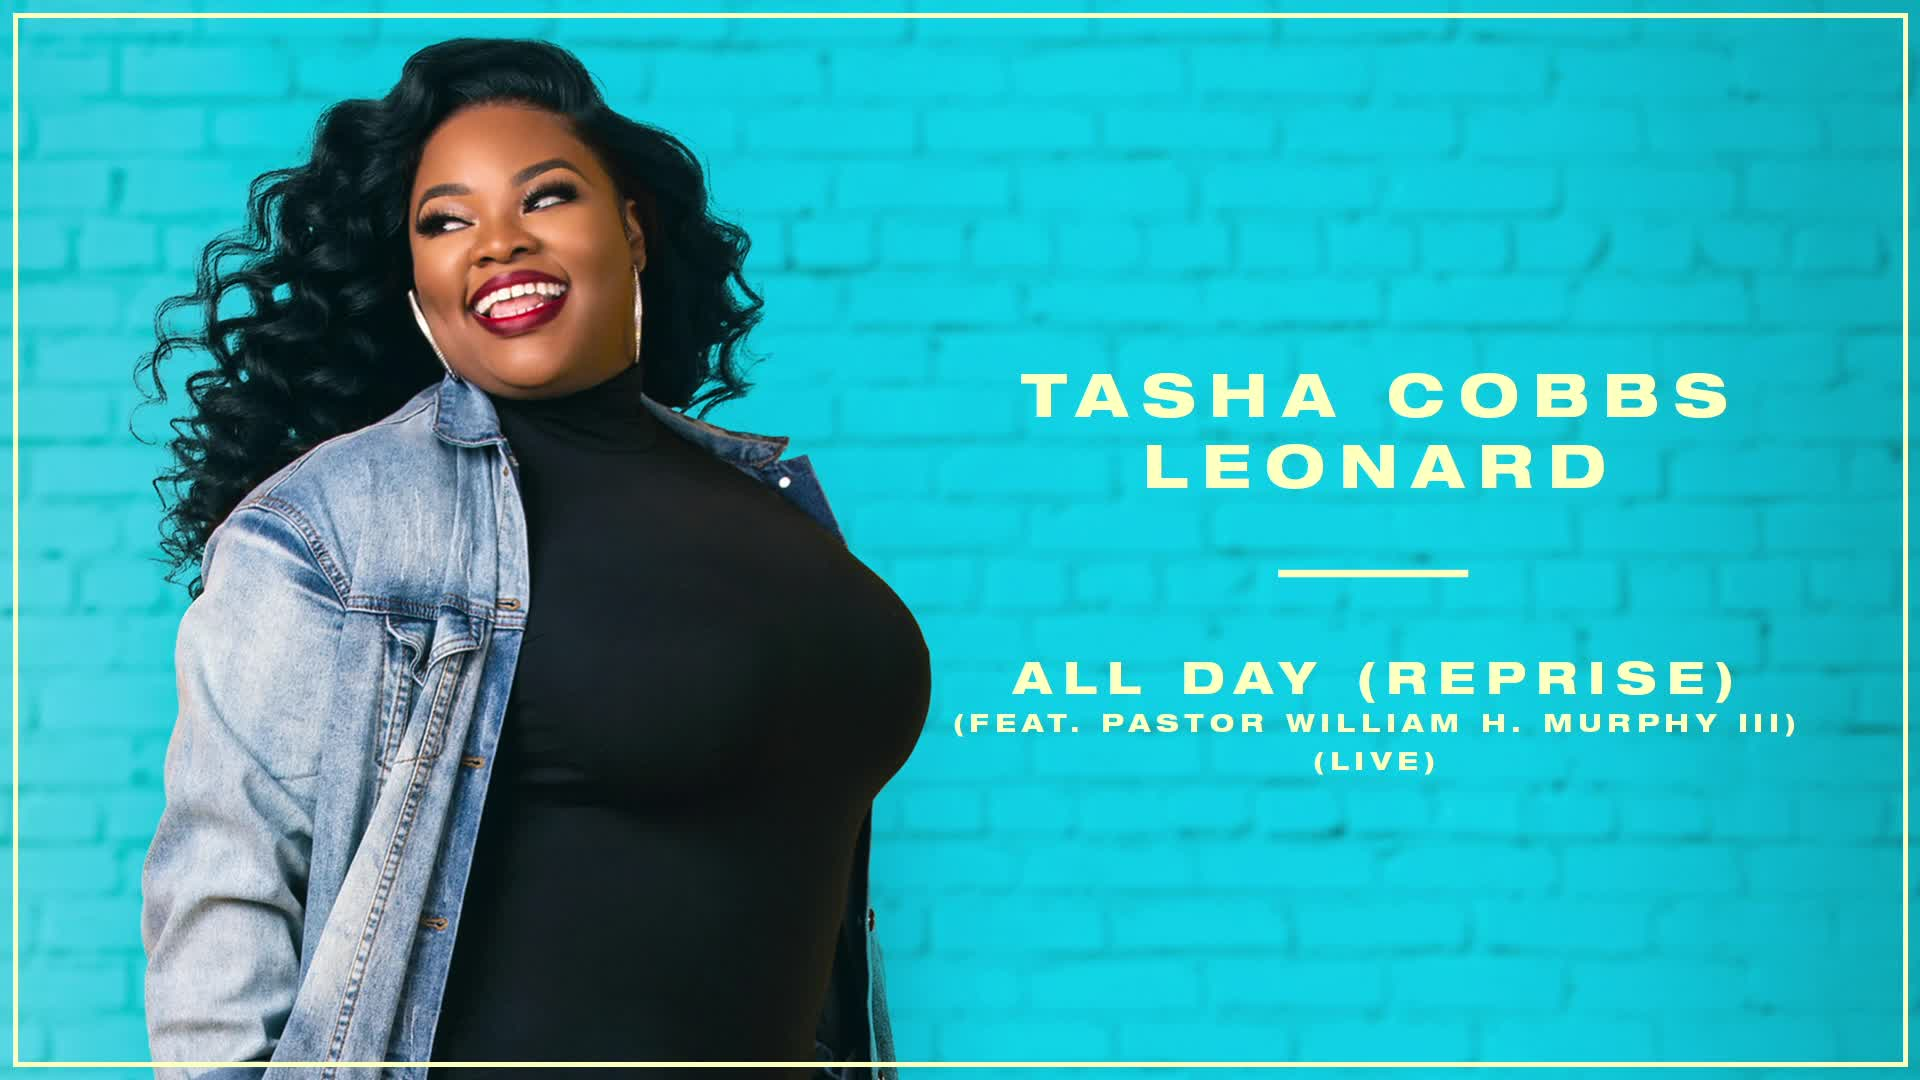 Tasha Cobbs Leonard - All Day